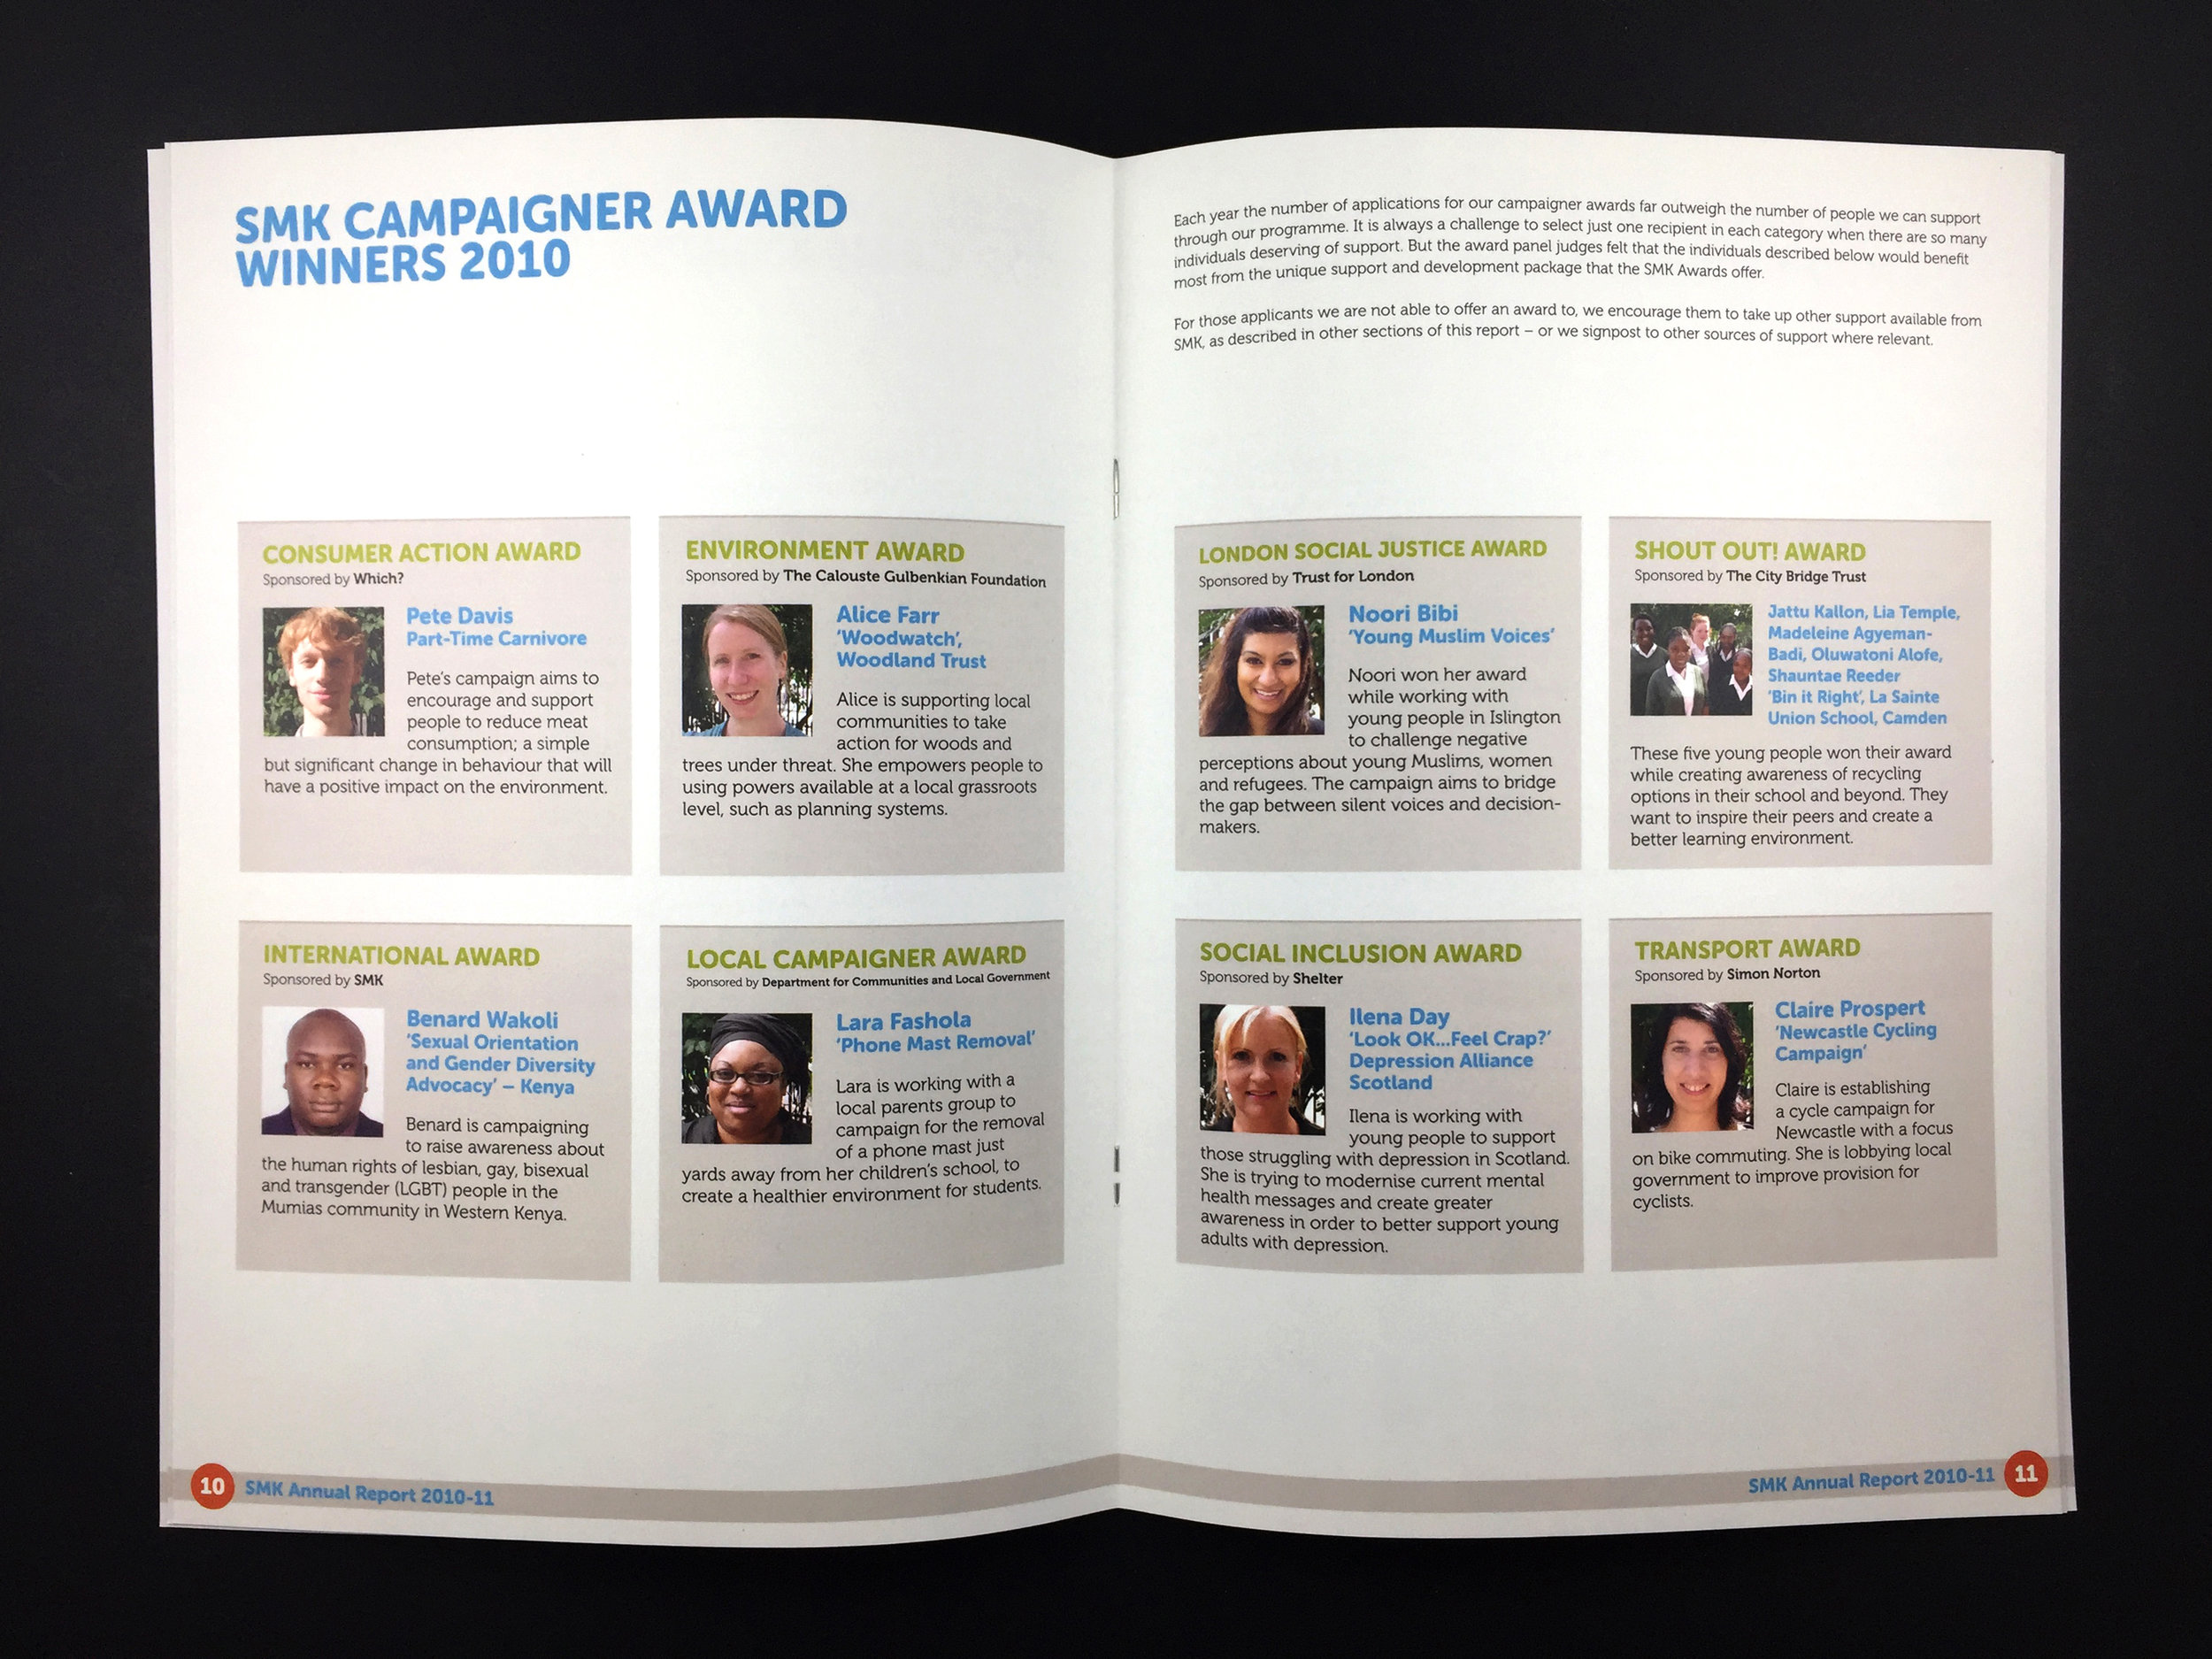 SMK-campainger-awards-winners.jpg